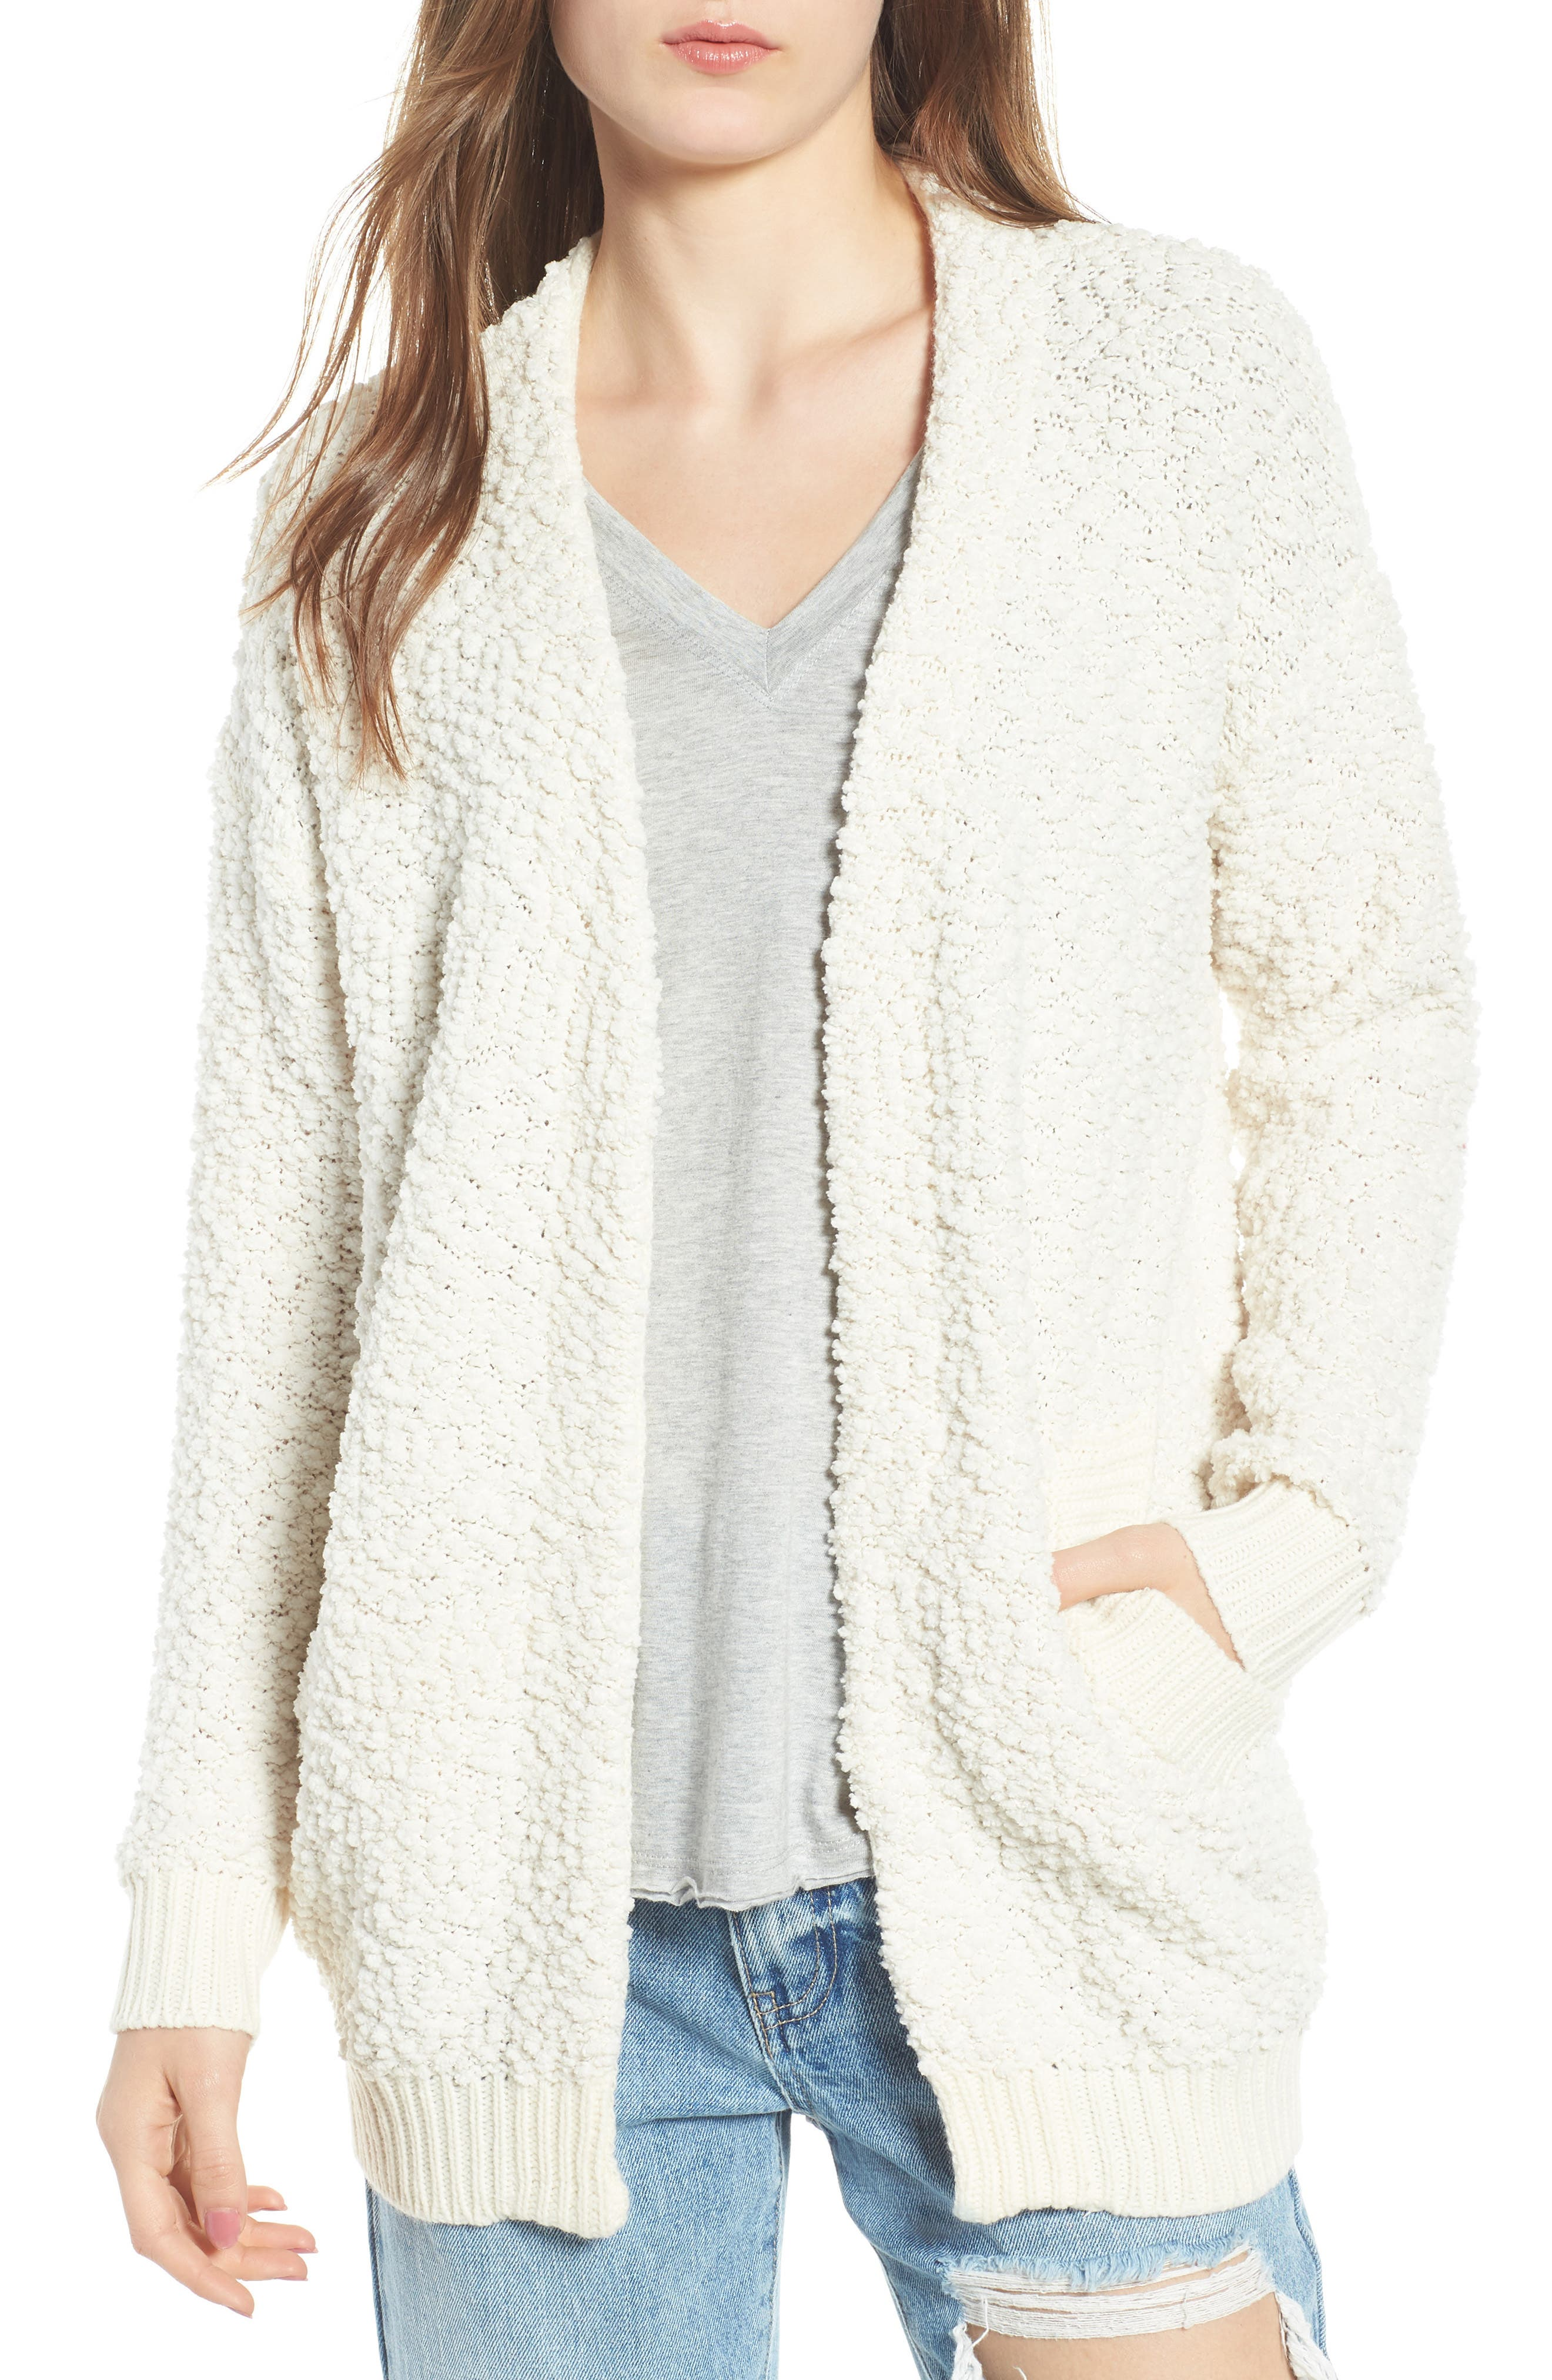 DREAMERS BY DEBUT Nubby Cardigan, Main, color, 900